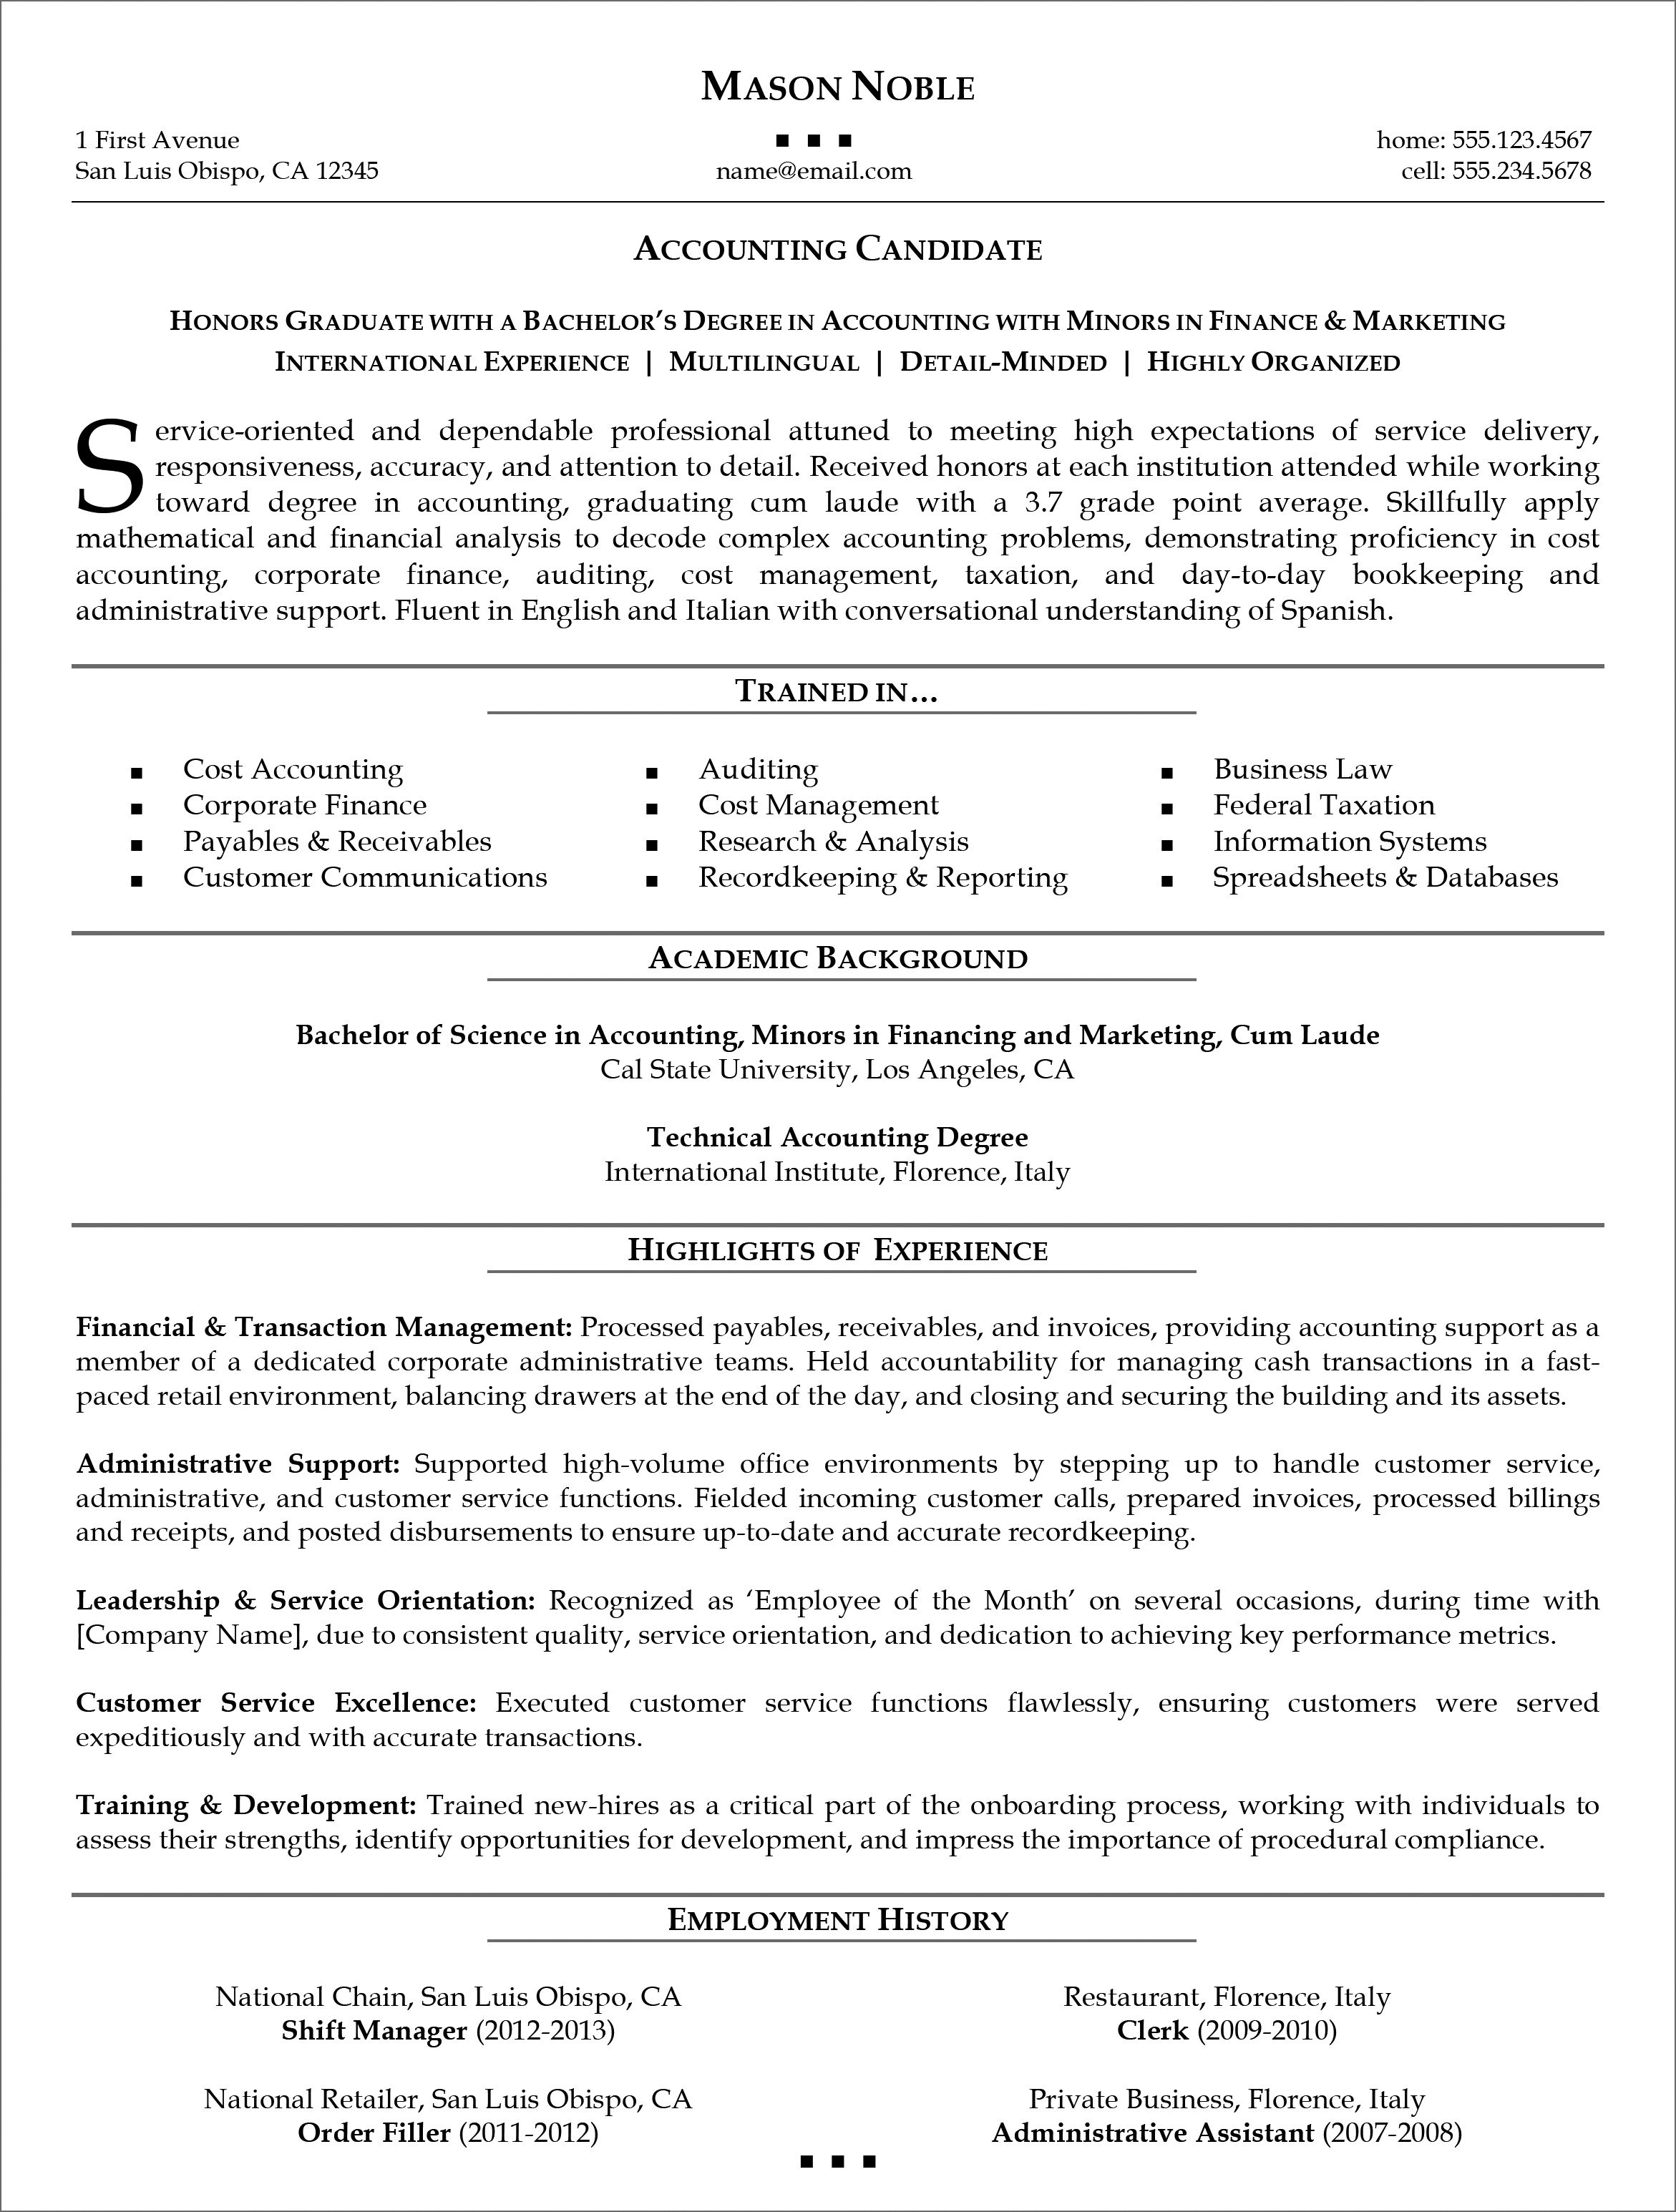 Functional Resume Writing Functional Resume Resume And Cover Letter Work Resume